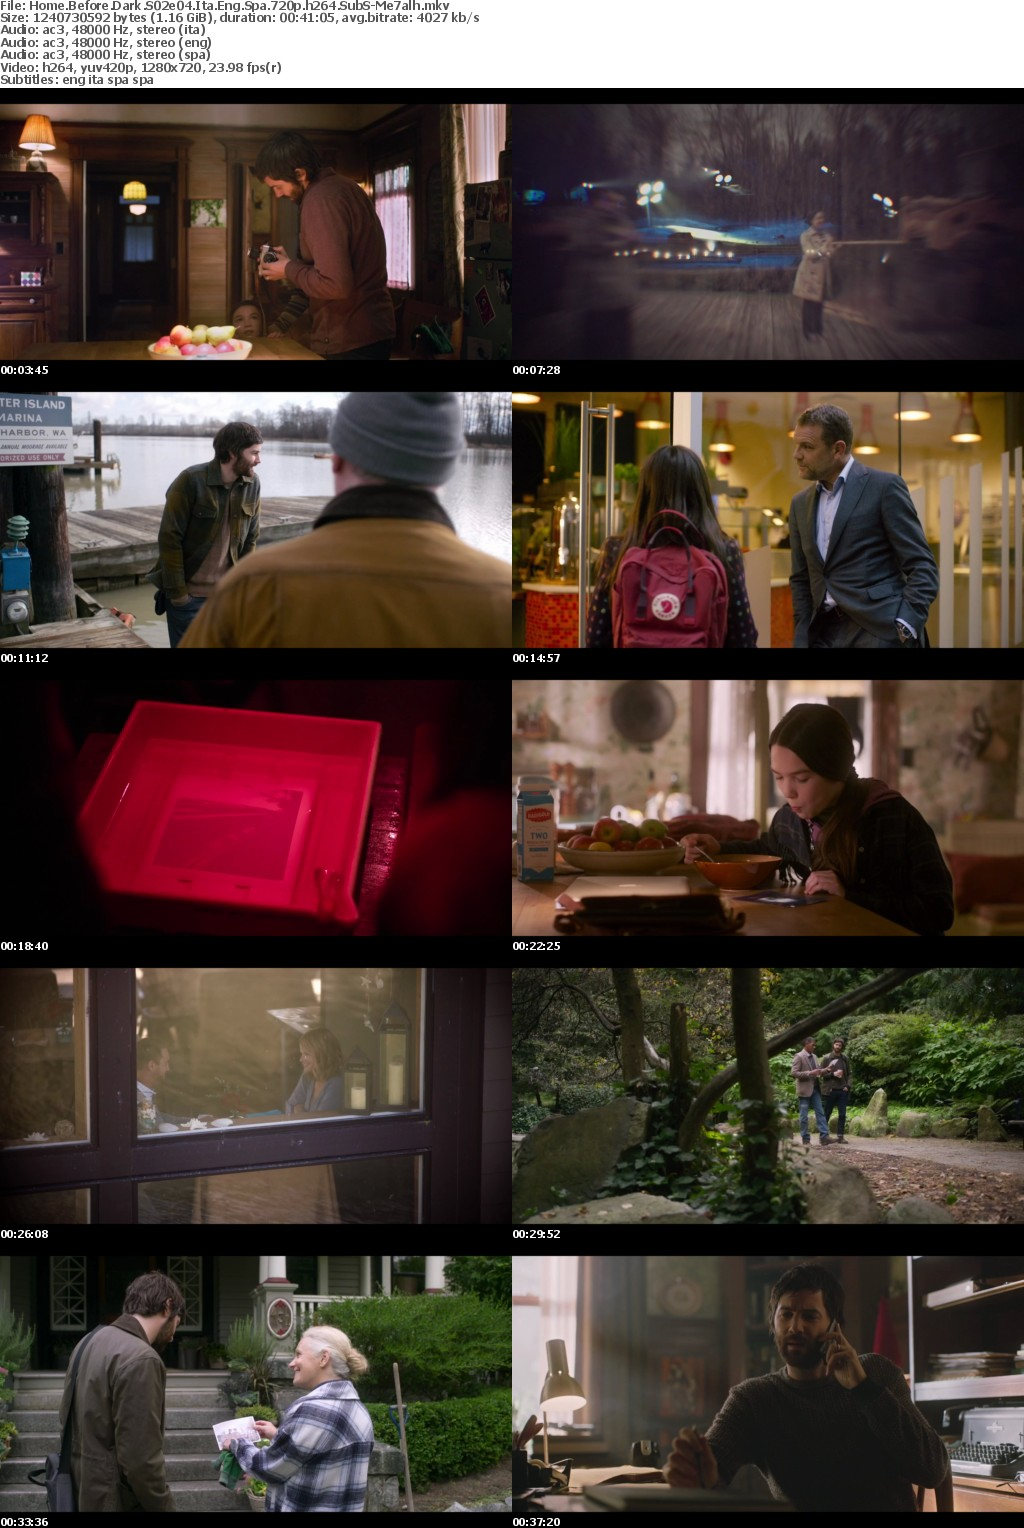 Home Before Dark S02e04 720p Ita Eng Spa SubS MirCrewRelease byMe7alh